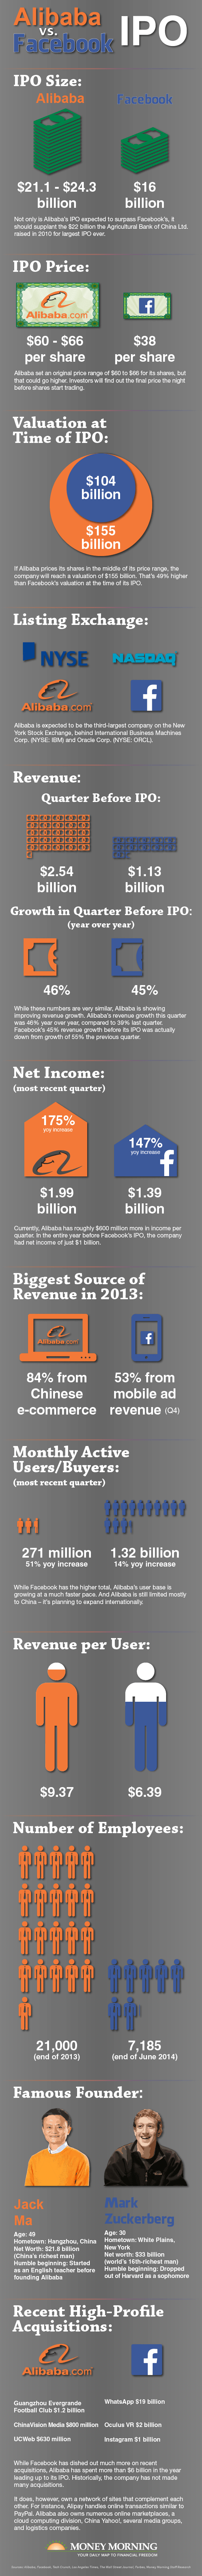 Alibaba Stock Price vs. Facebook Stock Price